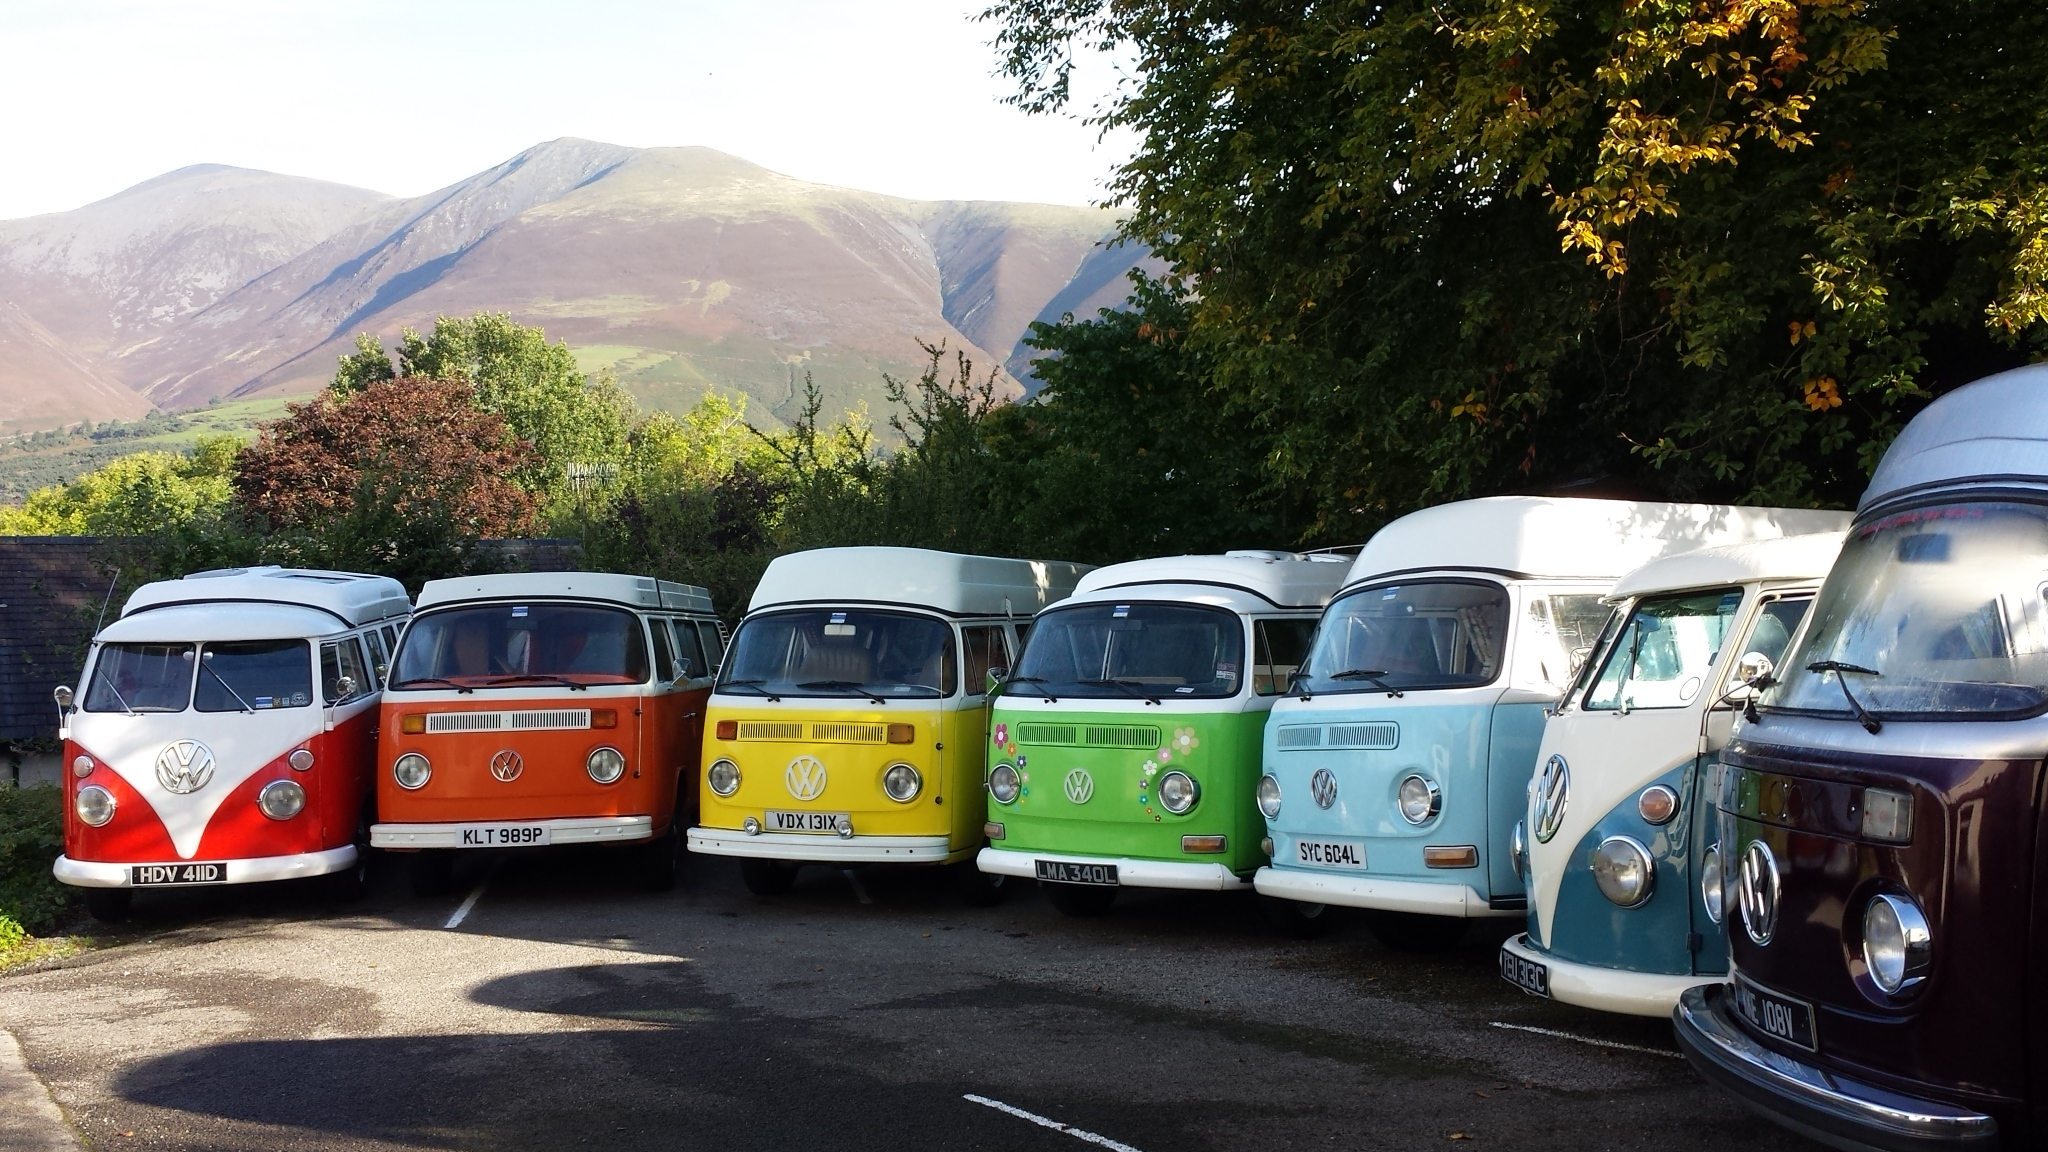 Volkswagen Camper Hire | VW Campervan to Rent in The Lake District, Cumbria, Northwest England